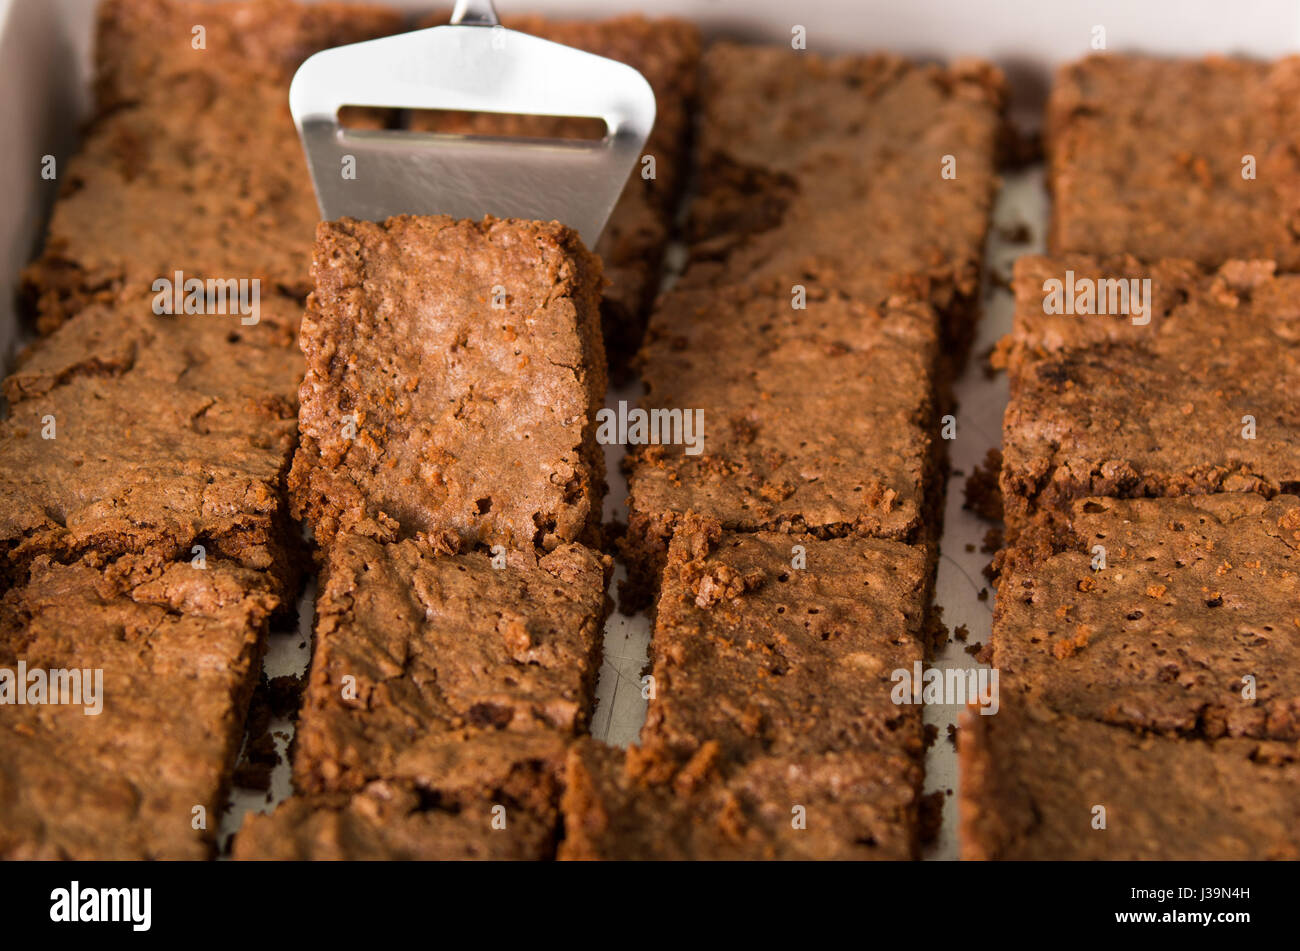 Delicious brown colored chocolate brownies lined up, square pieces as seen from above angle, metal cake cutter being Stock Photo